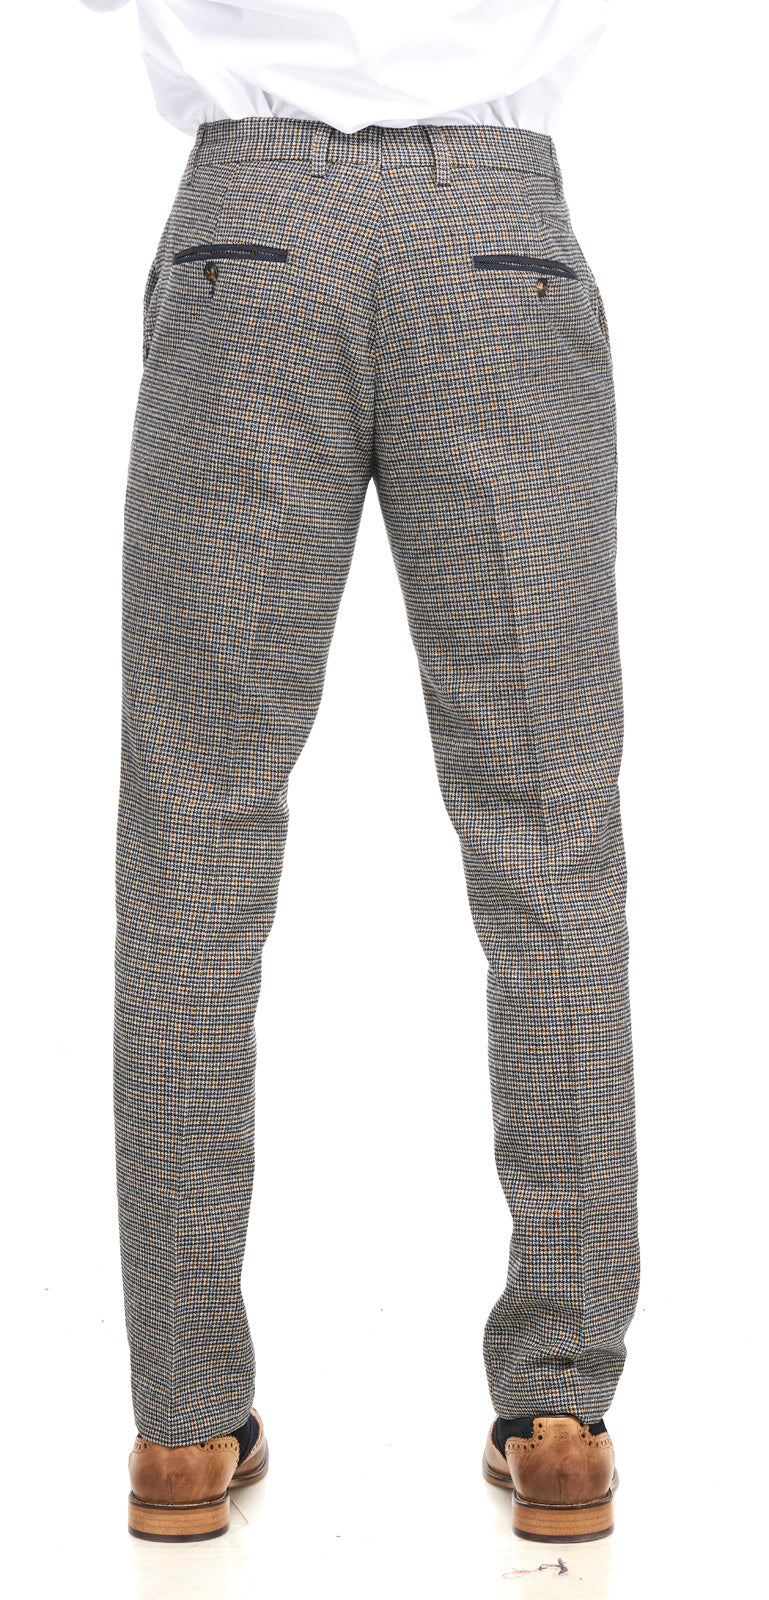 Marc Darcy | Hardwick Navy and Tan Tweed Trousers | Mens Tweed Suits